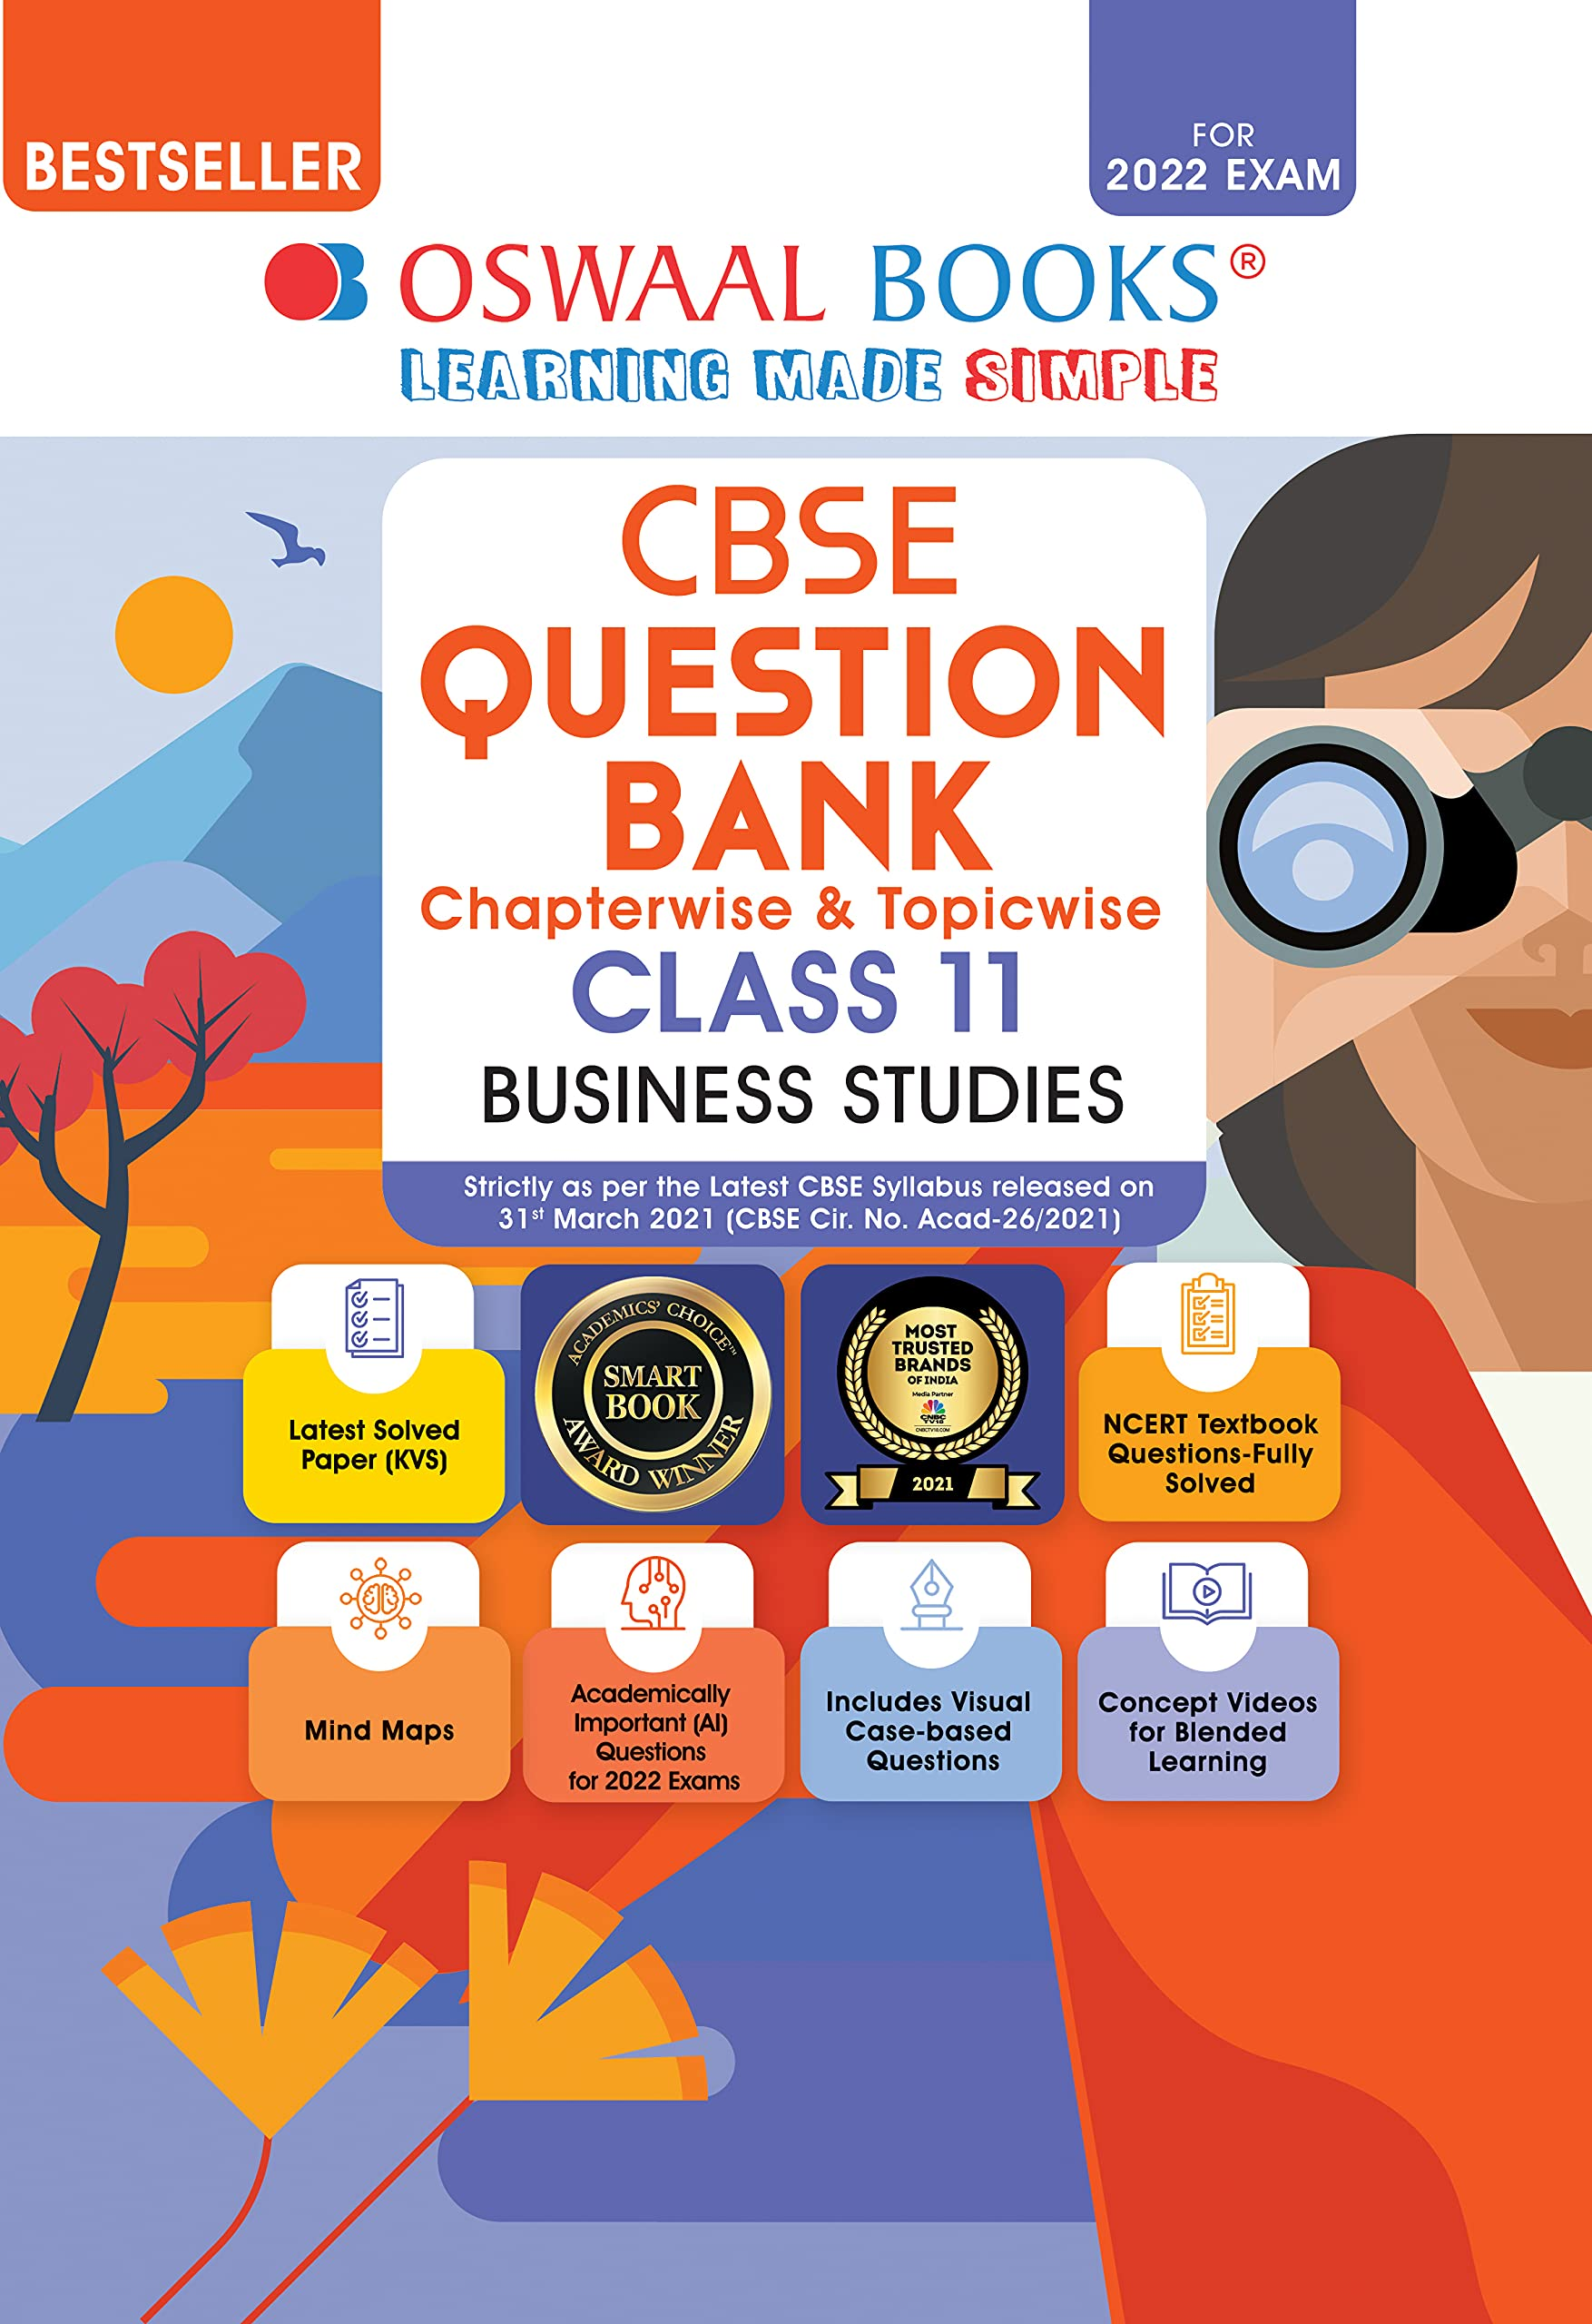 Oswaal CBSE Question Bank Class 11 Business Studies Book Chapterwise & Topicwise Includes Objective Types & MCQ's (For 2022 Exam)